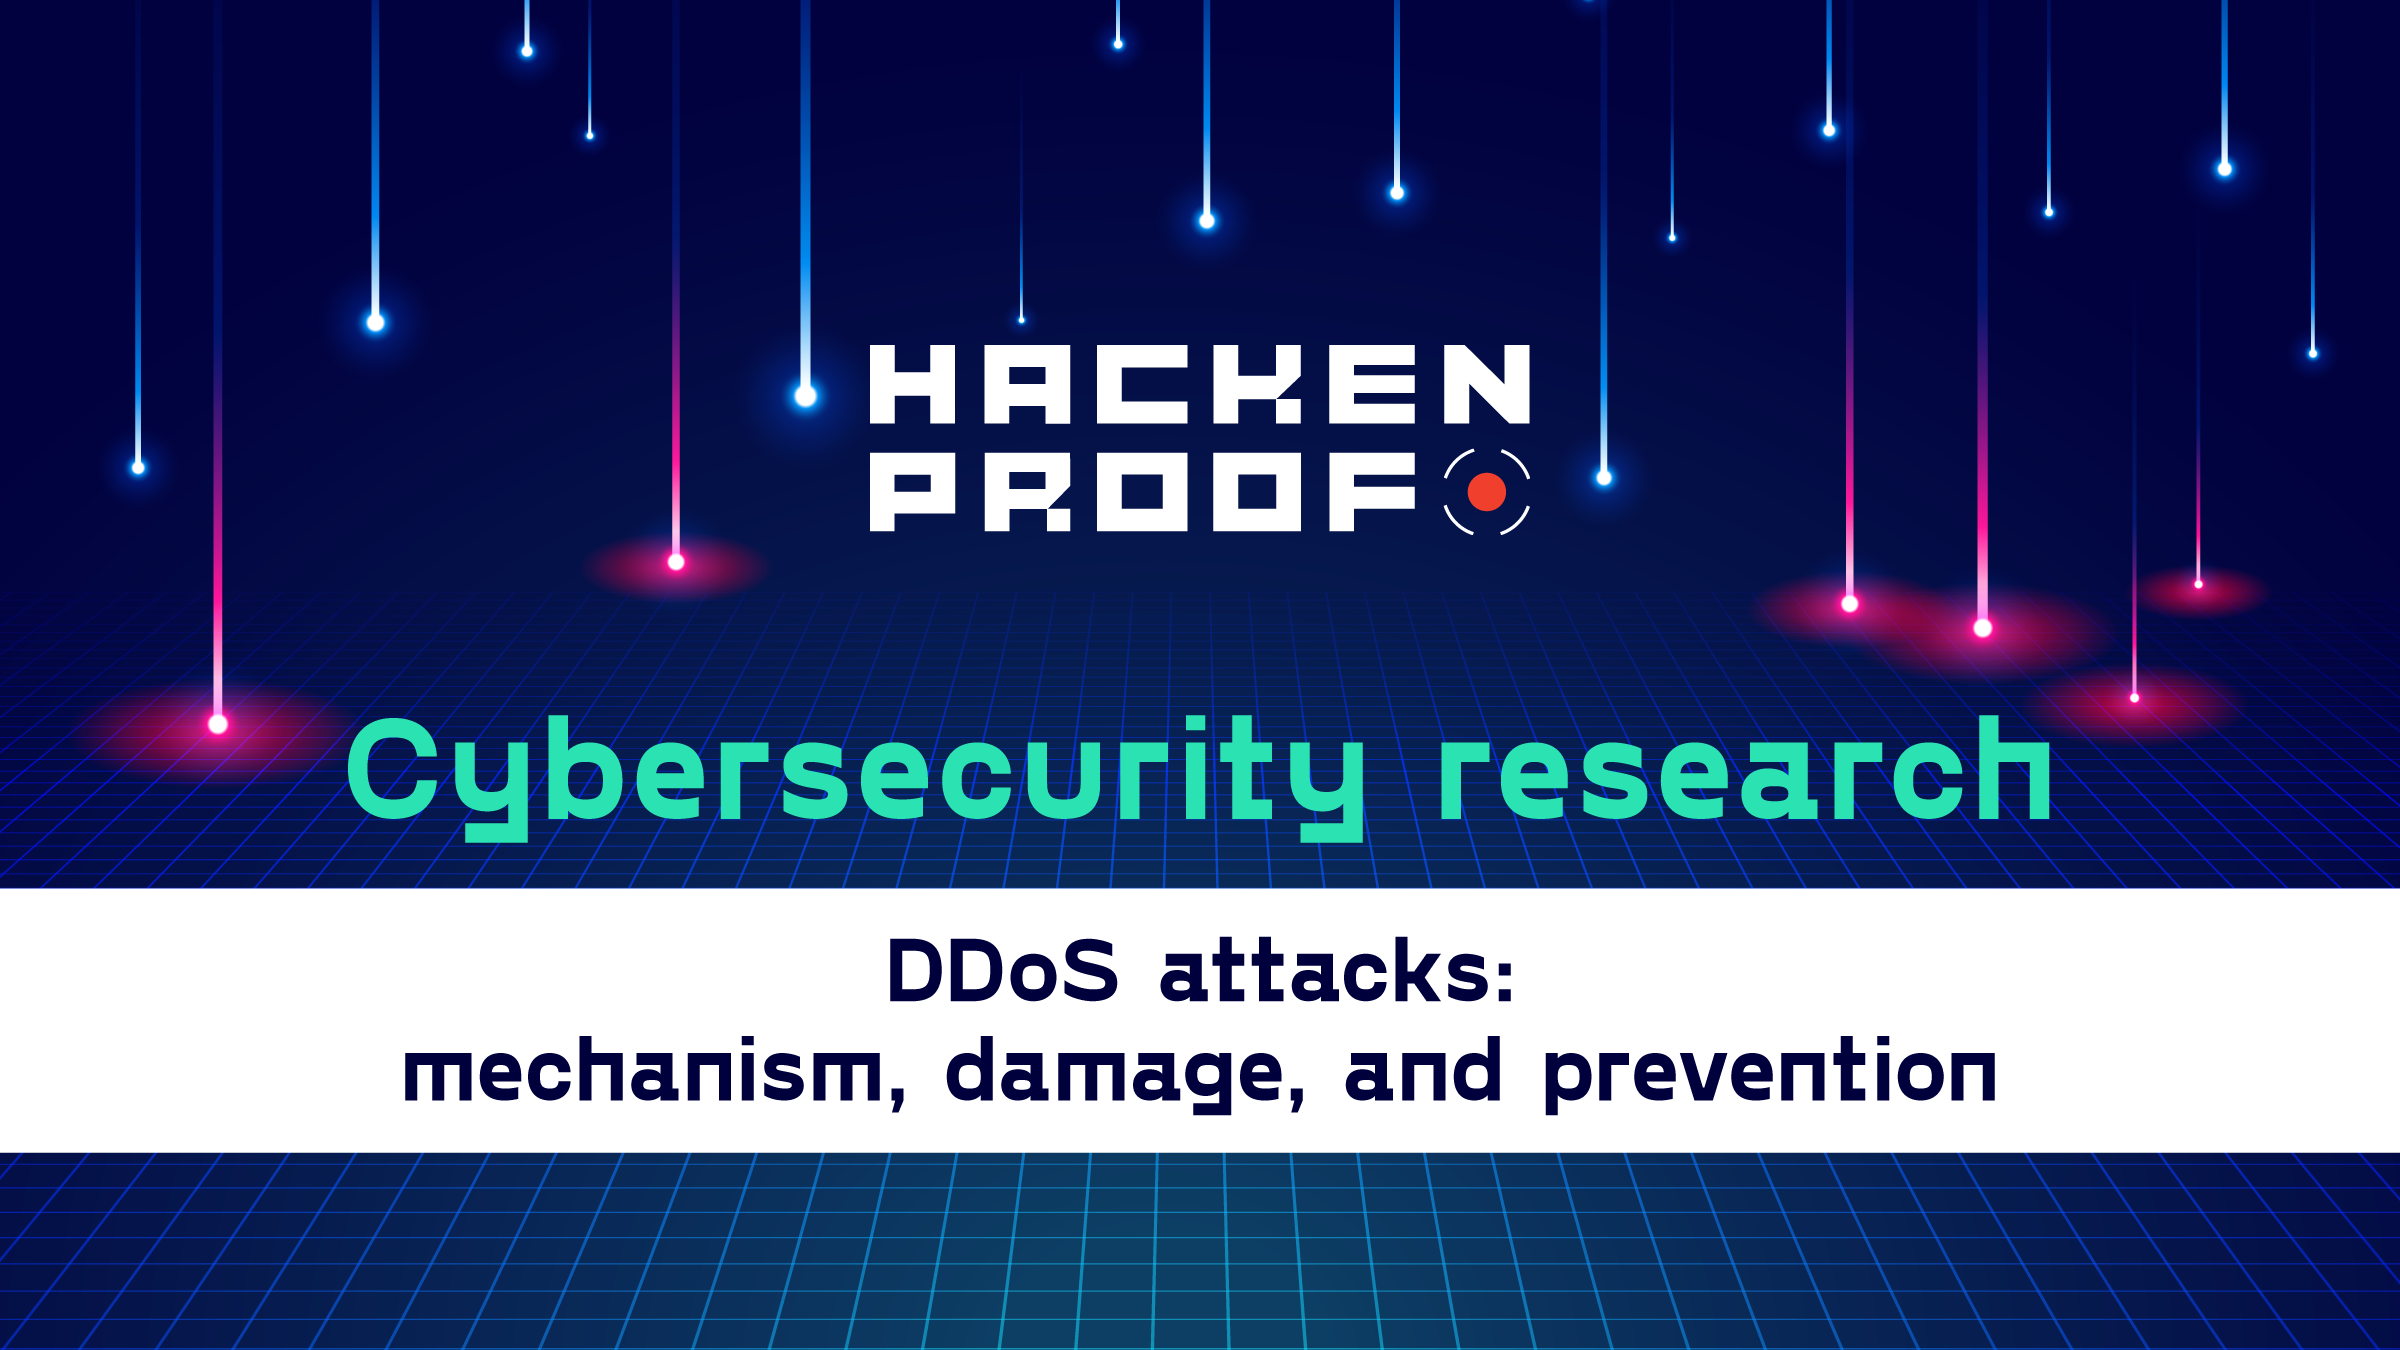 DDoS attacks: mechanism, damage, and prevention